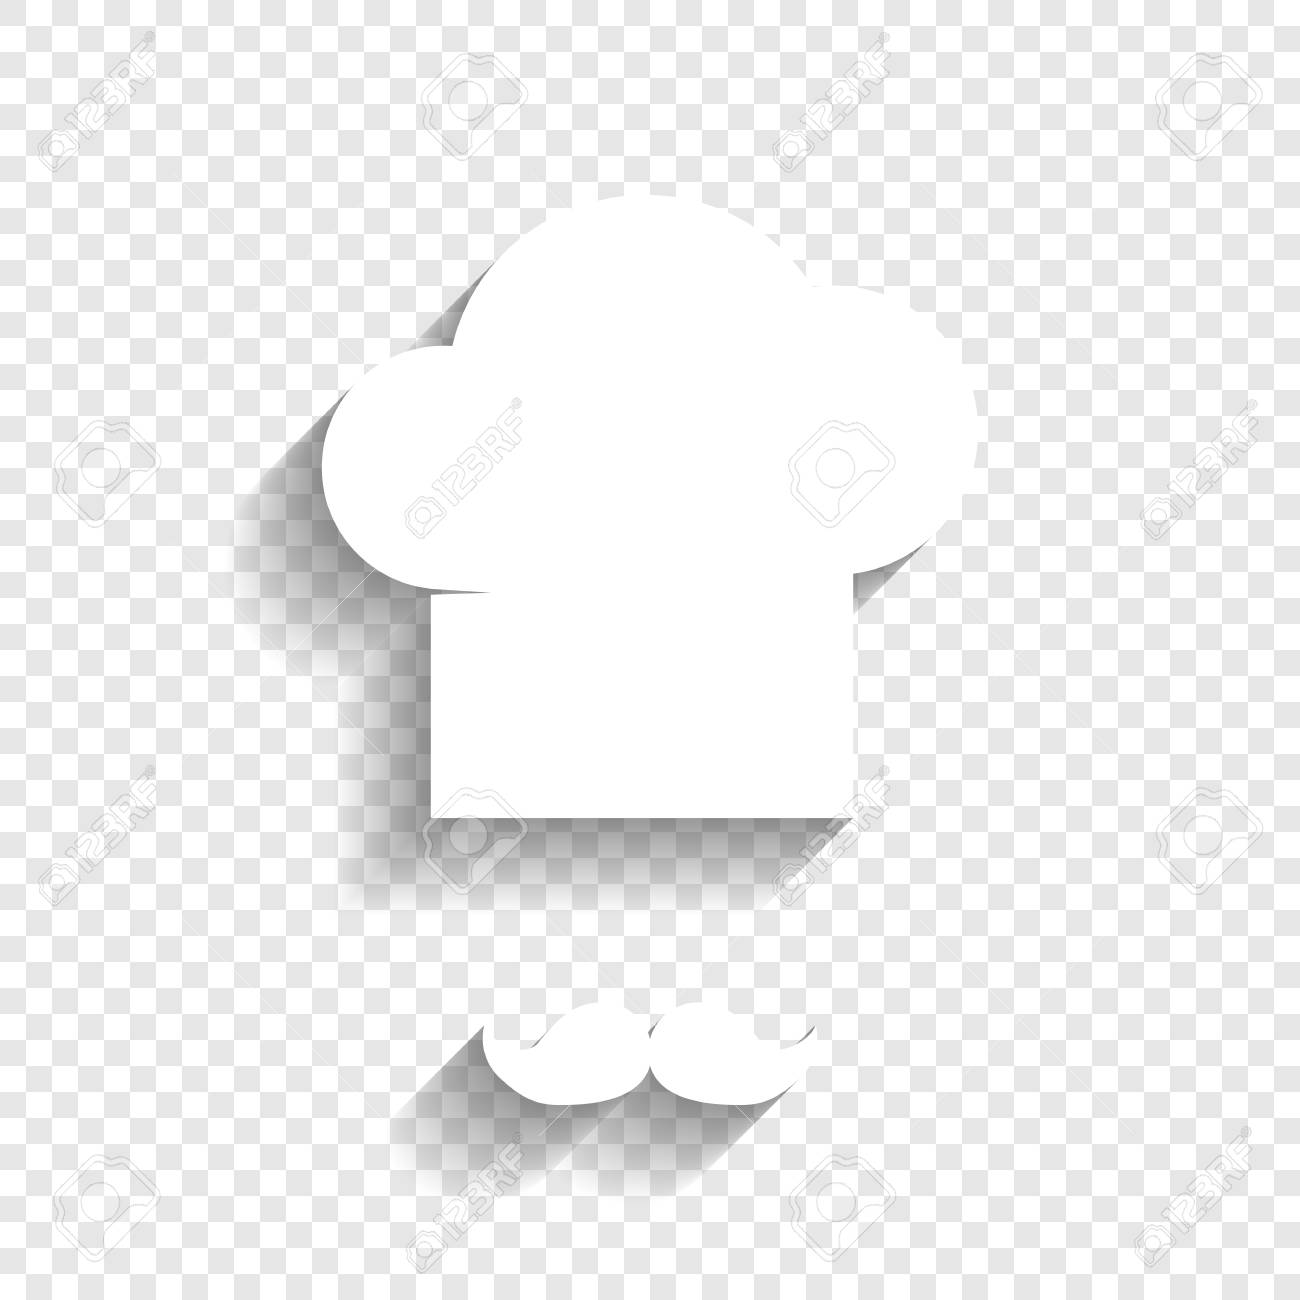 a51b7d5036dd6 Chef hat and moustache sign. Vector. White icon with soft shadow on  transparent background